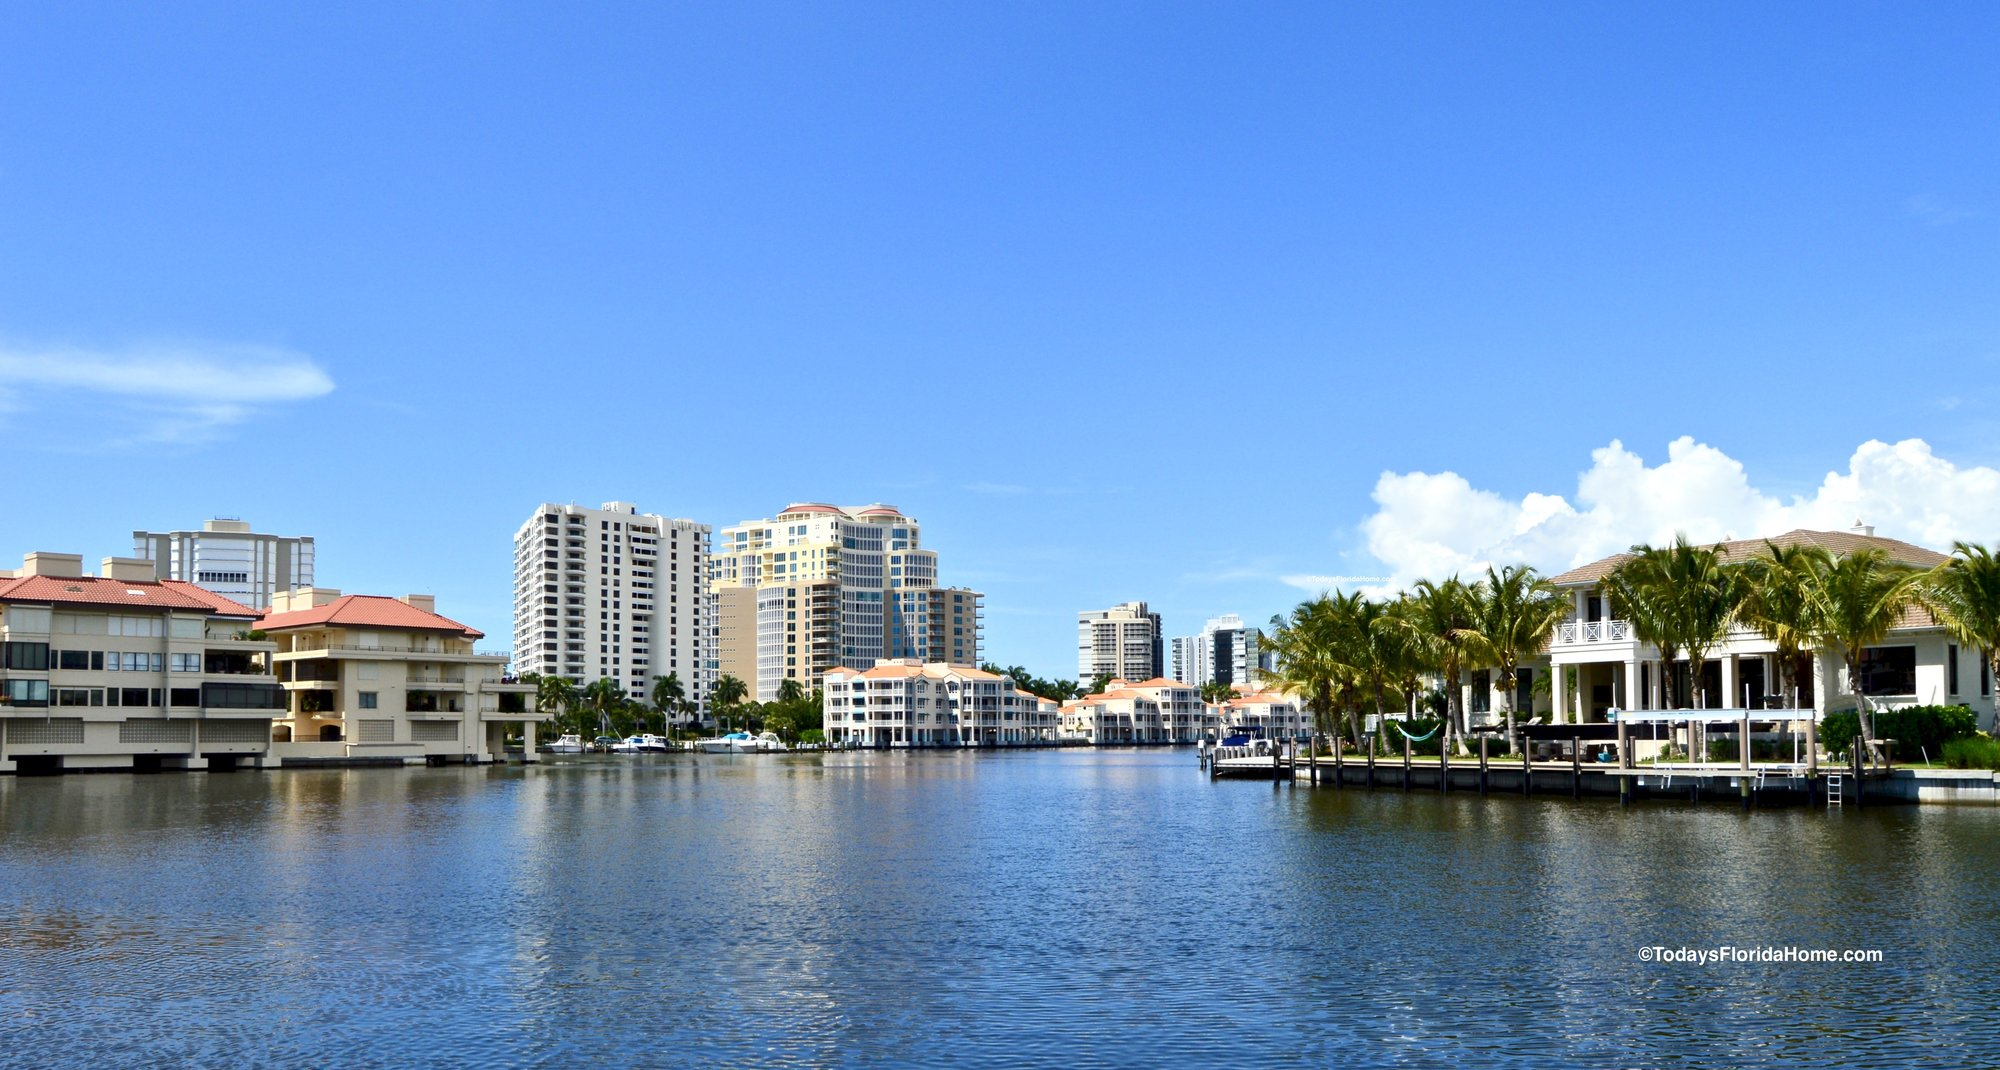 Naples Waterfront Properties, Waterfront Condos Naples, Naples Waterfront Homes, Gulf Access Homes Naples, Naples Gulf Access Condos, Gulf Shore, Naples Homes